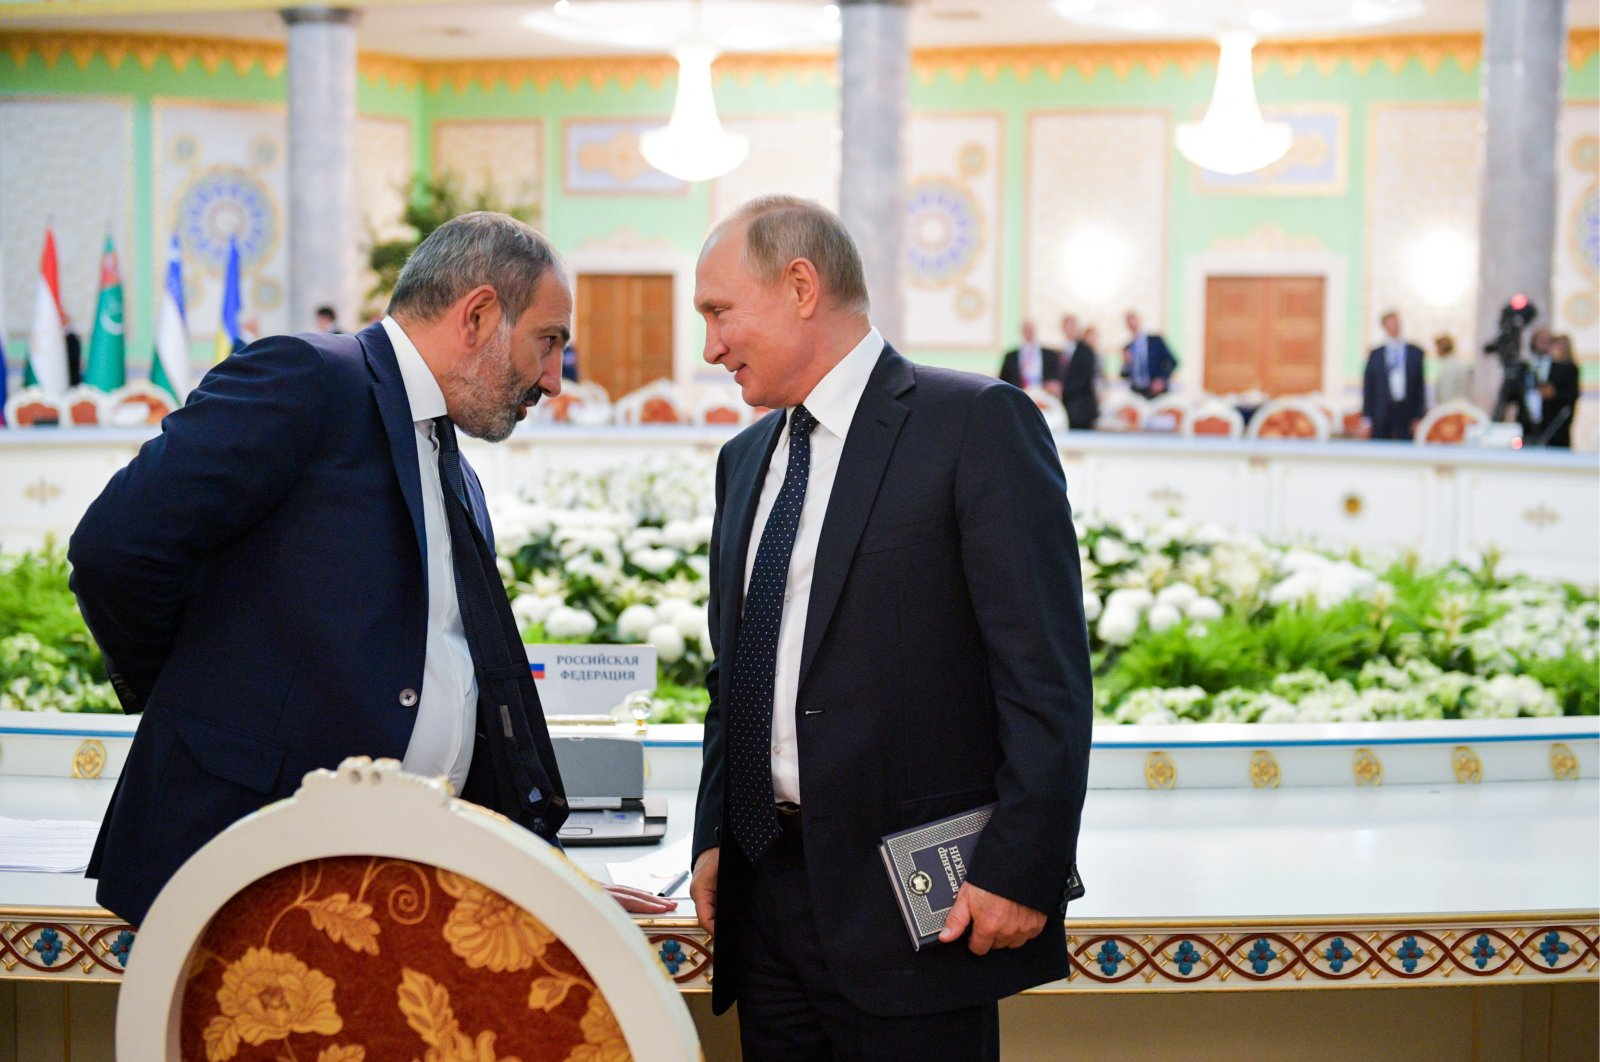 Russia's President Vladimir Putin and Armenia's Prime Minister Nikol Pashinian at a Commonwealth of Independent States (CIS) meeting at the Somon Palace, Dushanbe, Tajikistan, Sept. 28, 2018. (Photo by Getty Images)